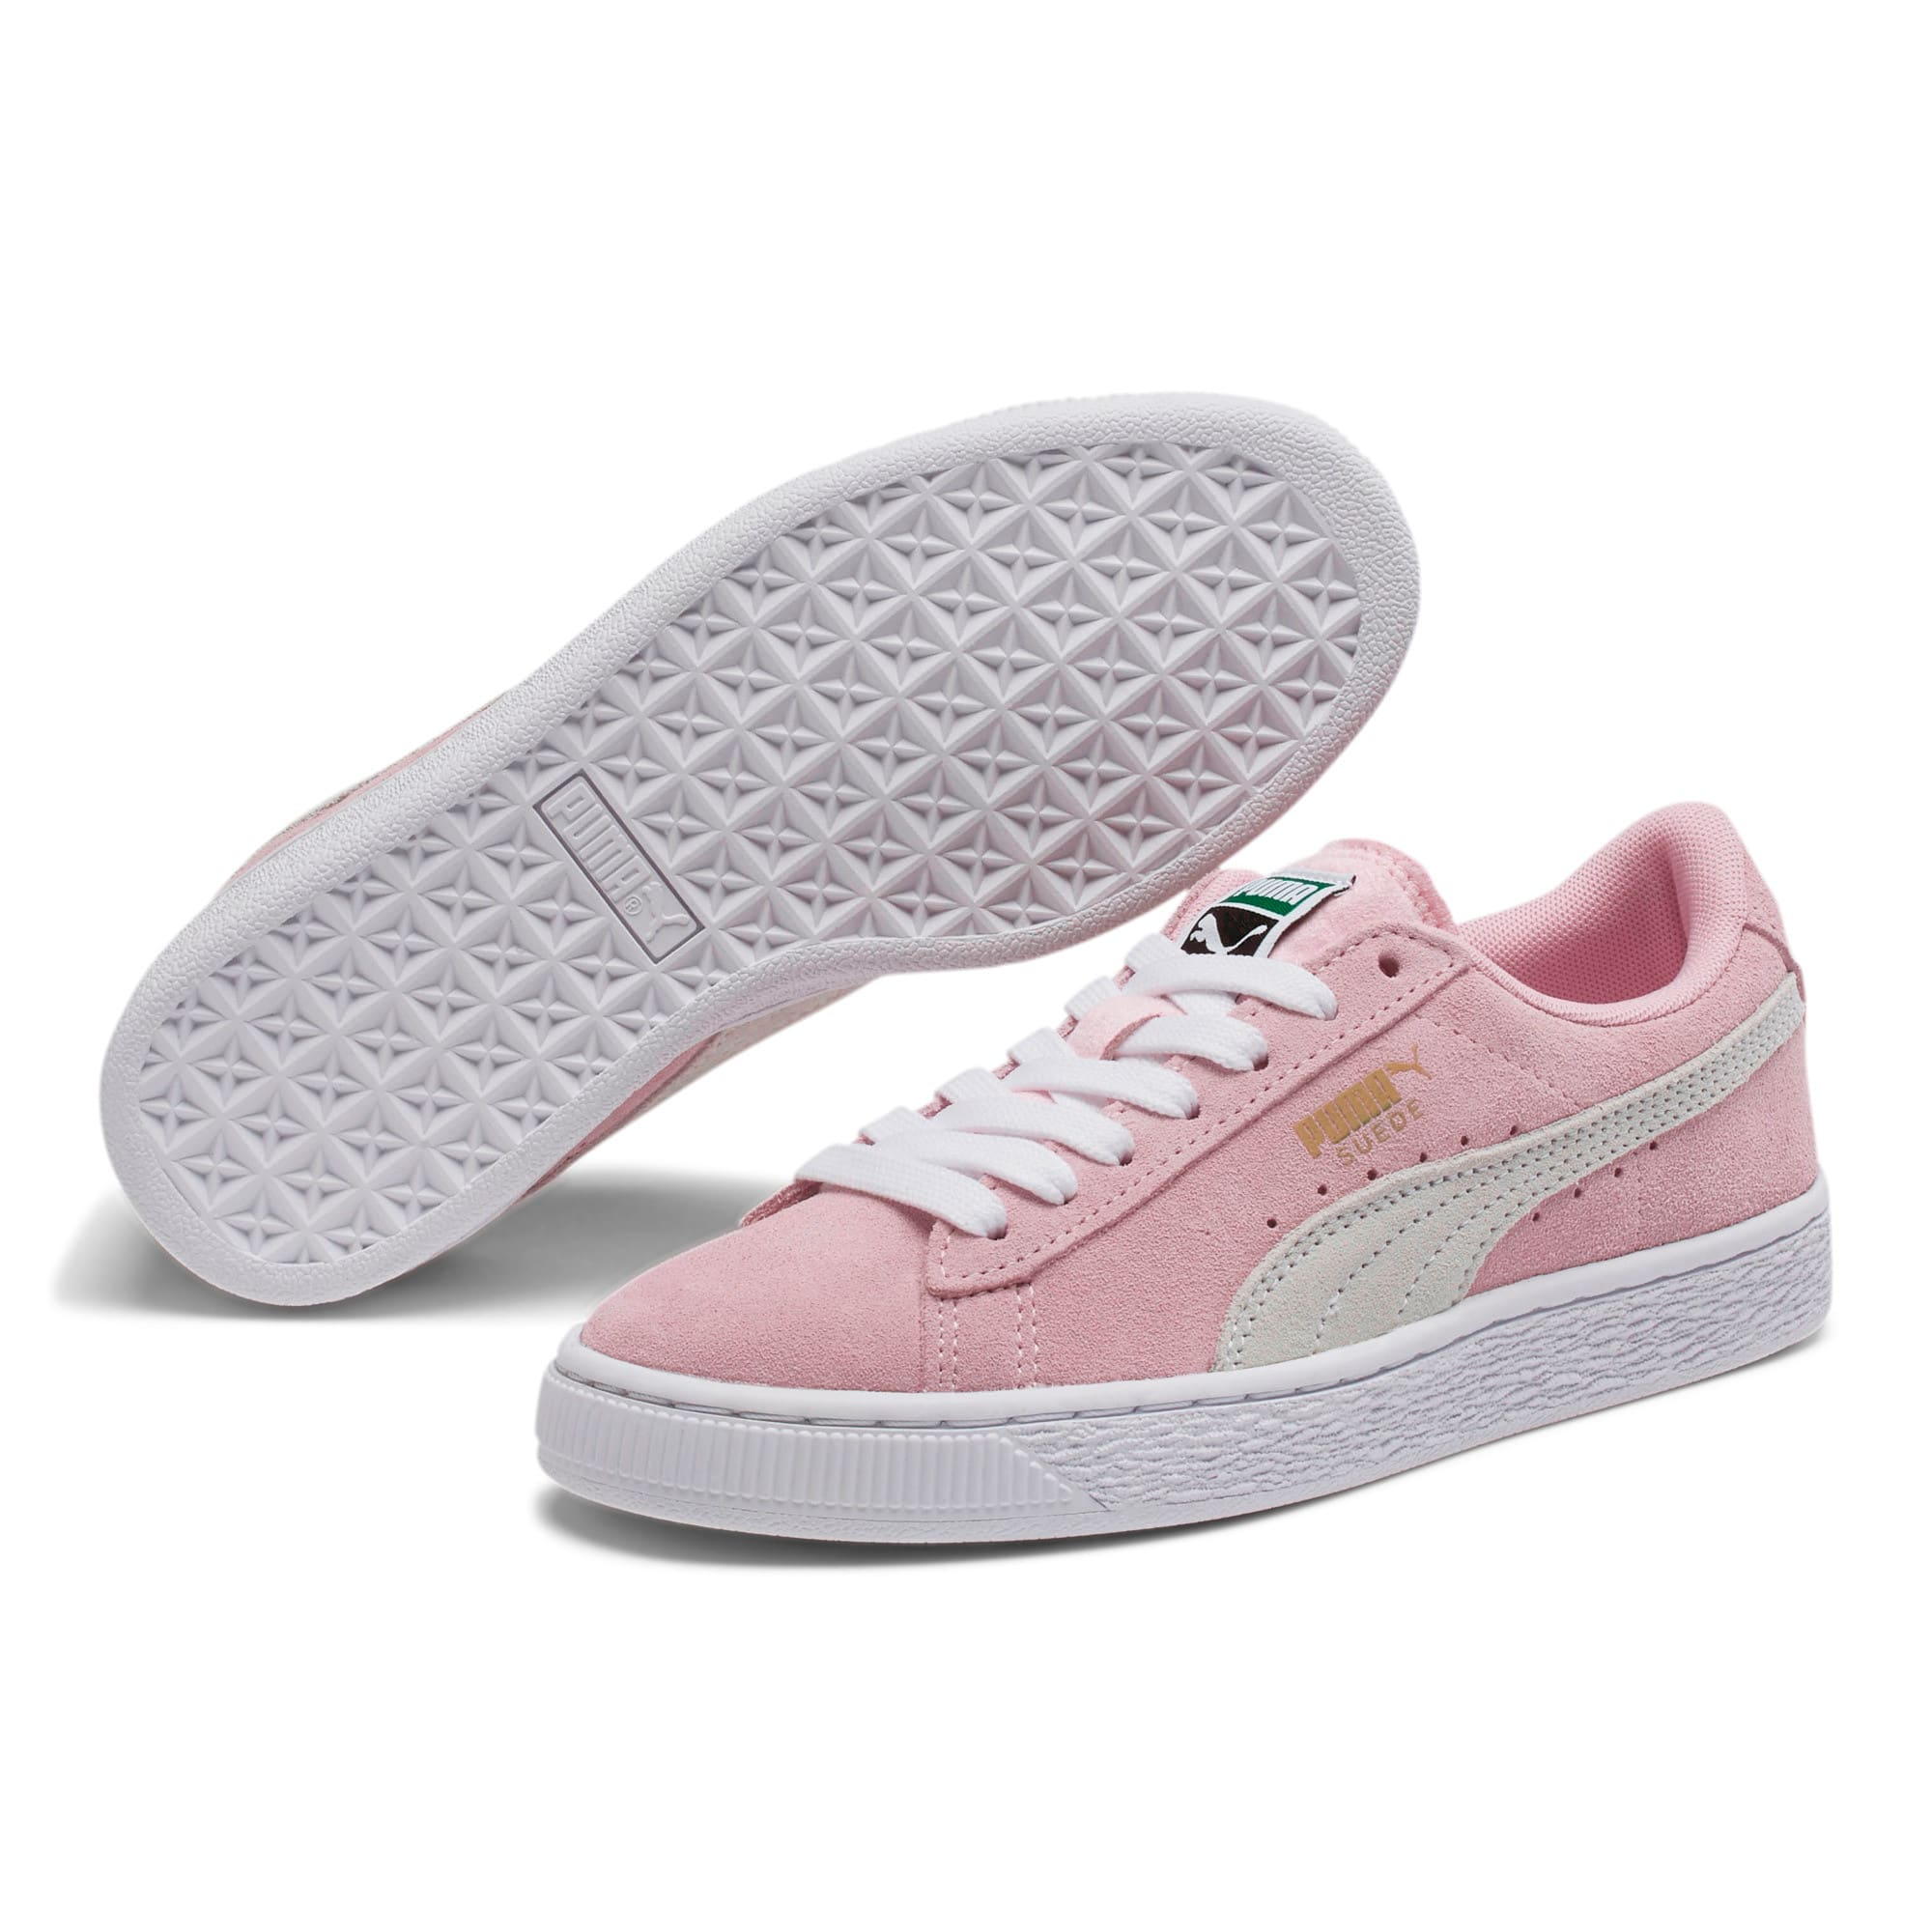 Zapatos deportivos Suede para JR, pink lady-white-team gold, grande